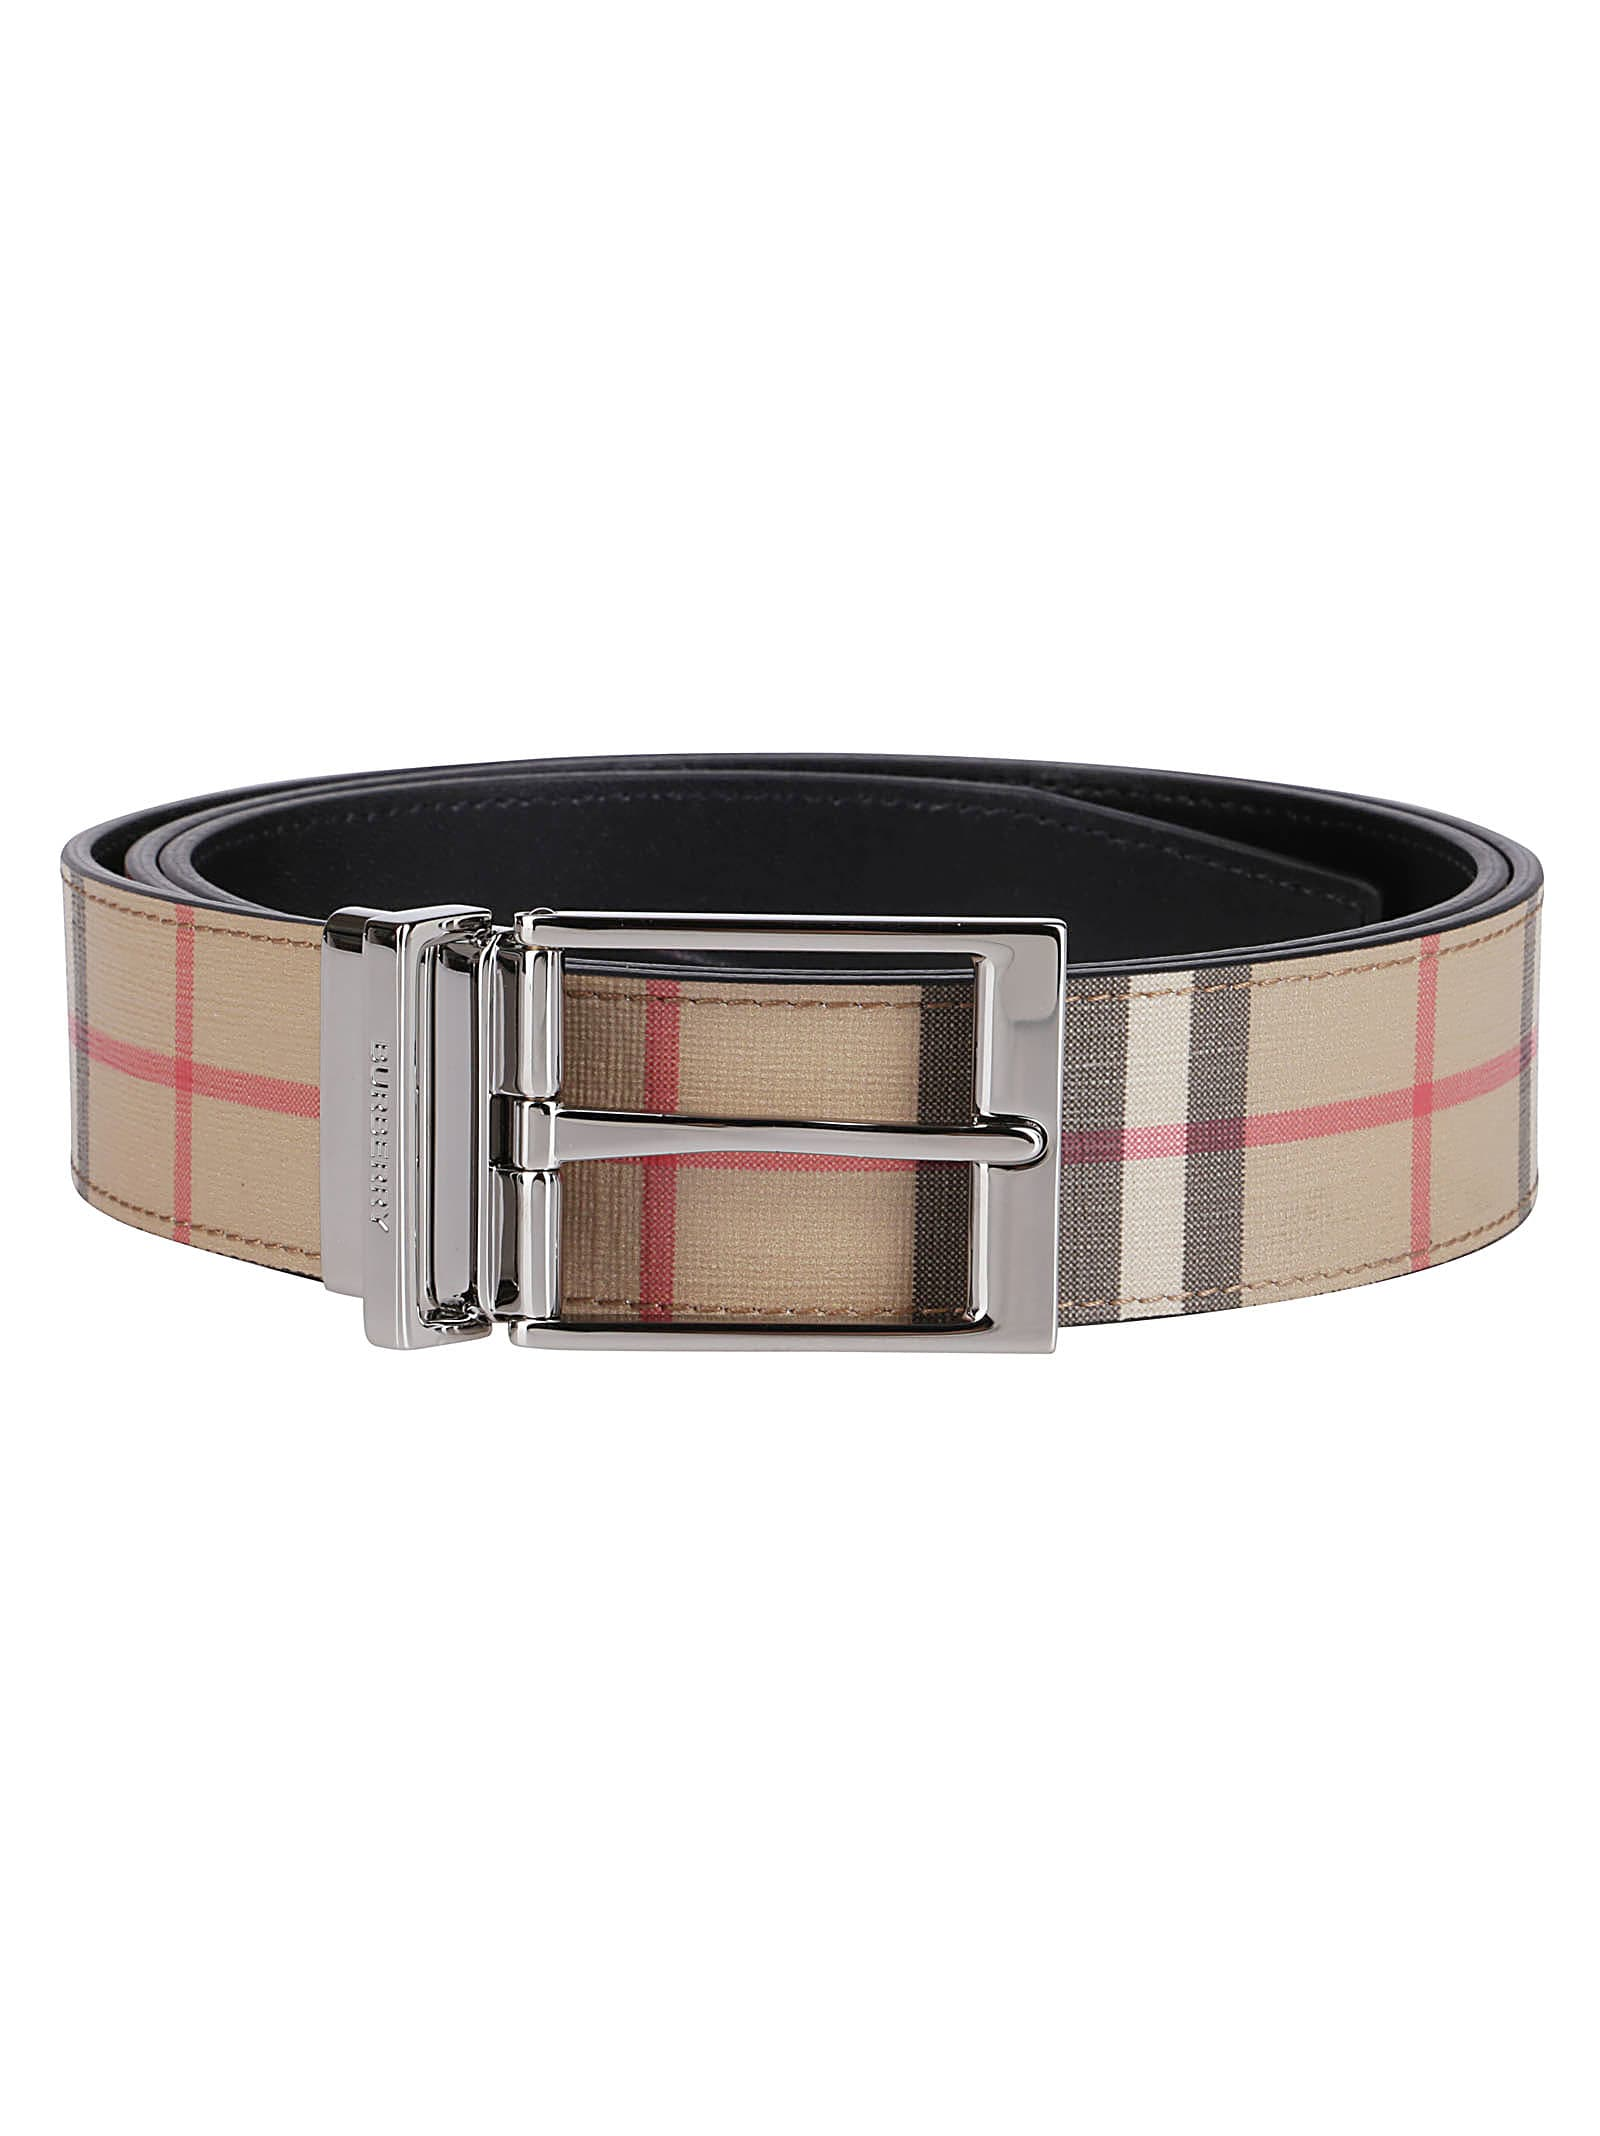 Burberry Belts CHECKED BUCKLE BELT